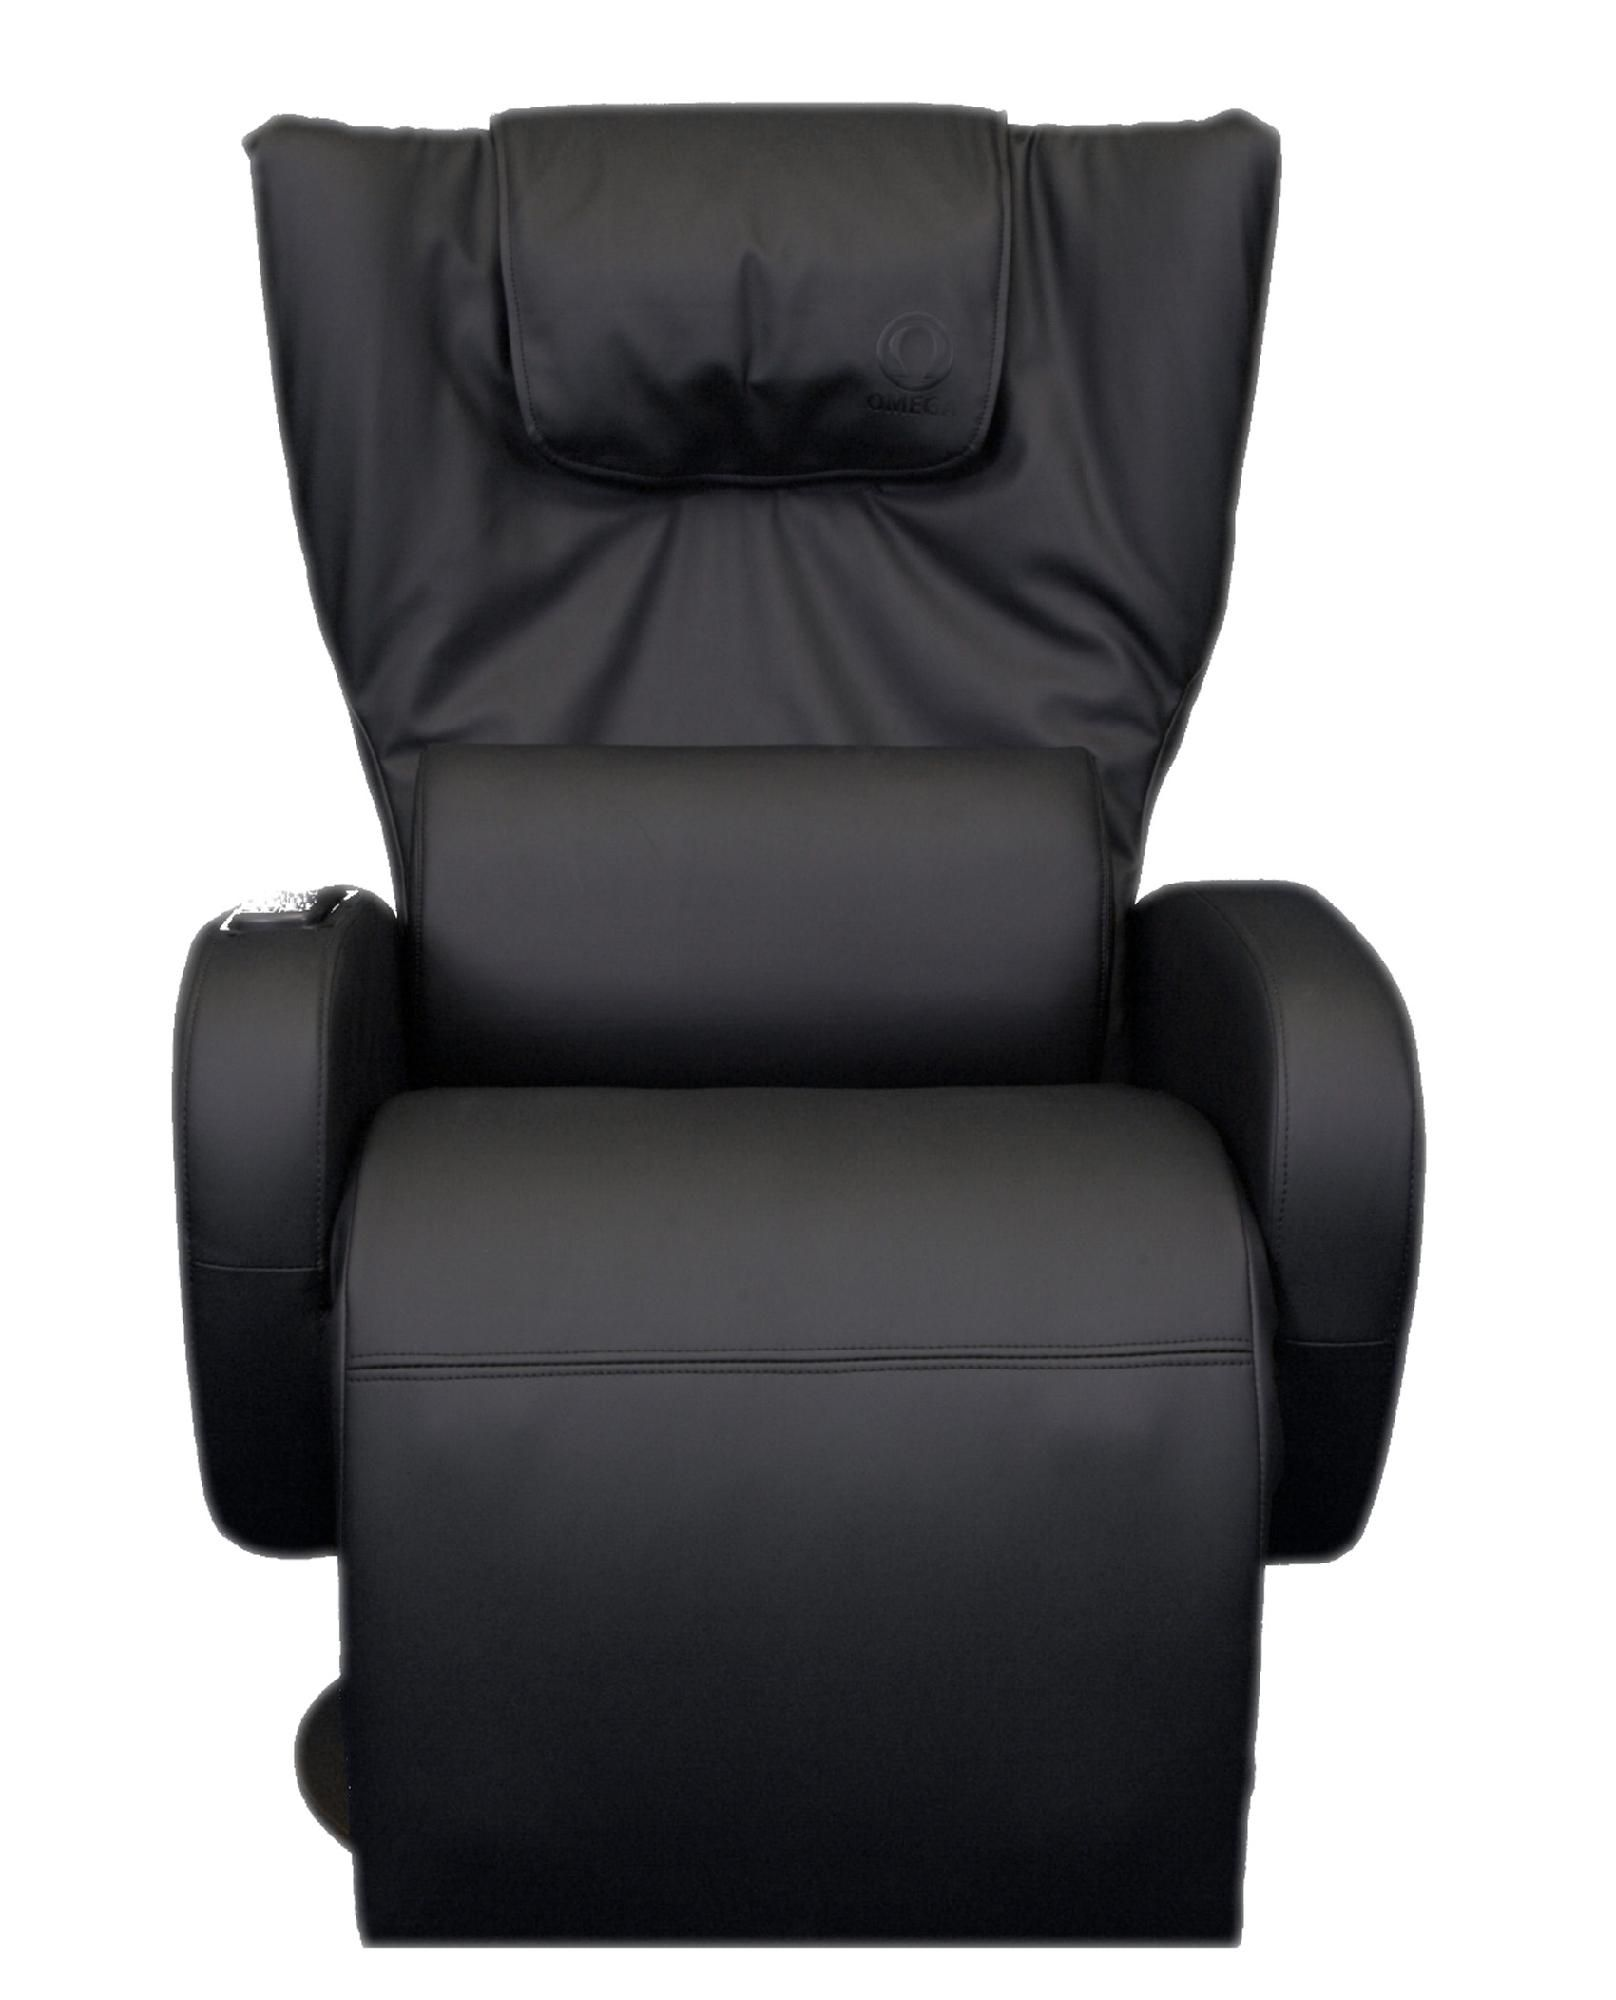 Omega Massage Serenity Zero Gravity Relaxation Recliner in BLACK